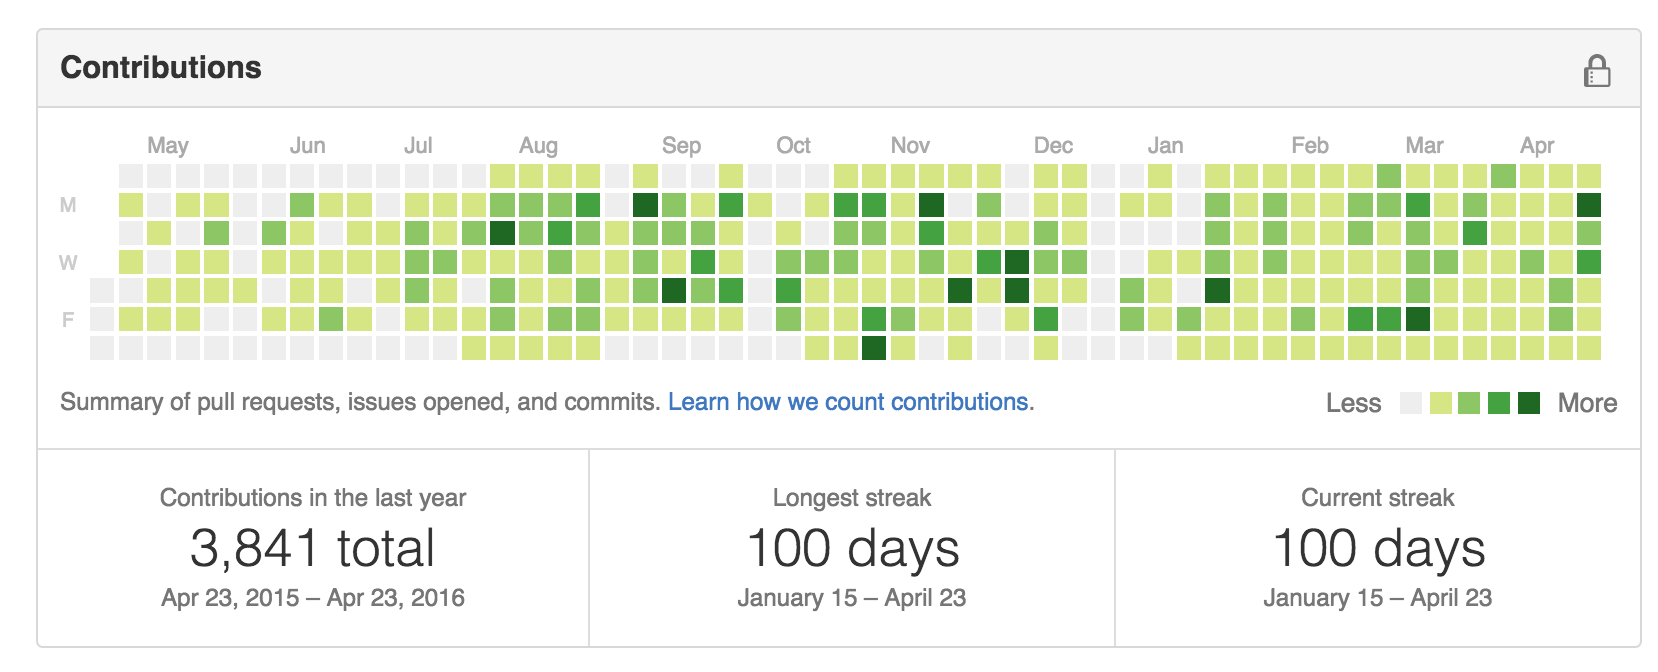 100 day commit streak